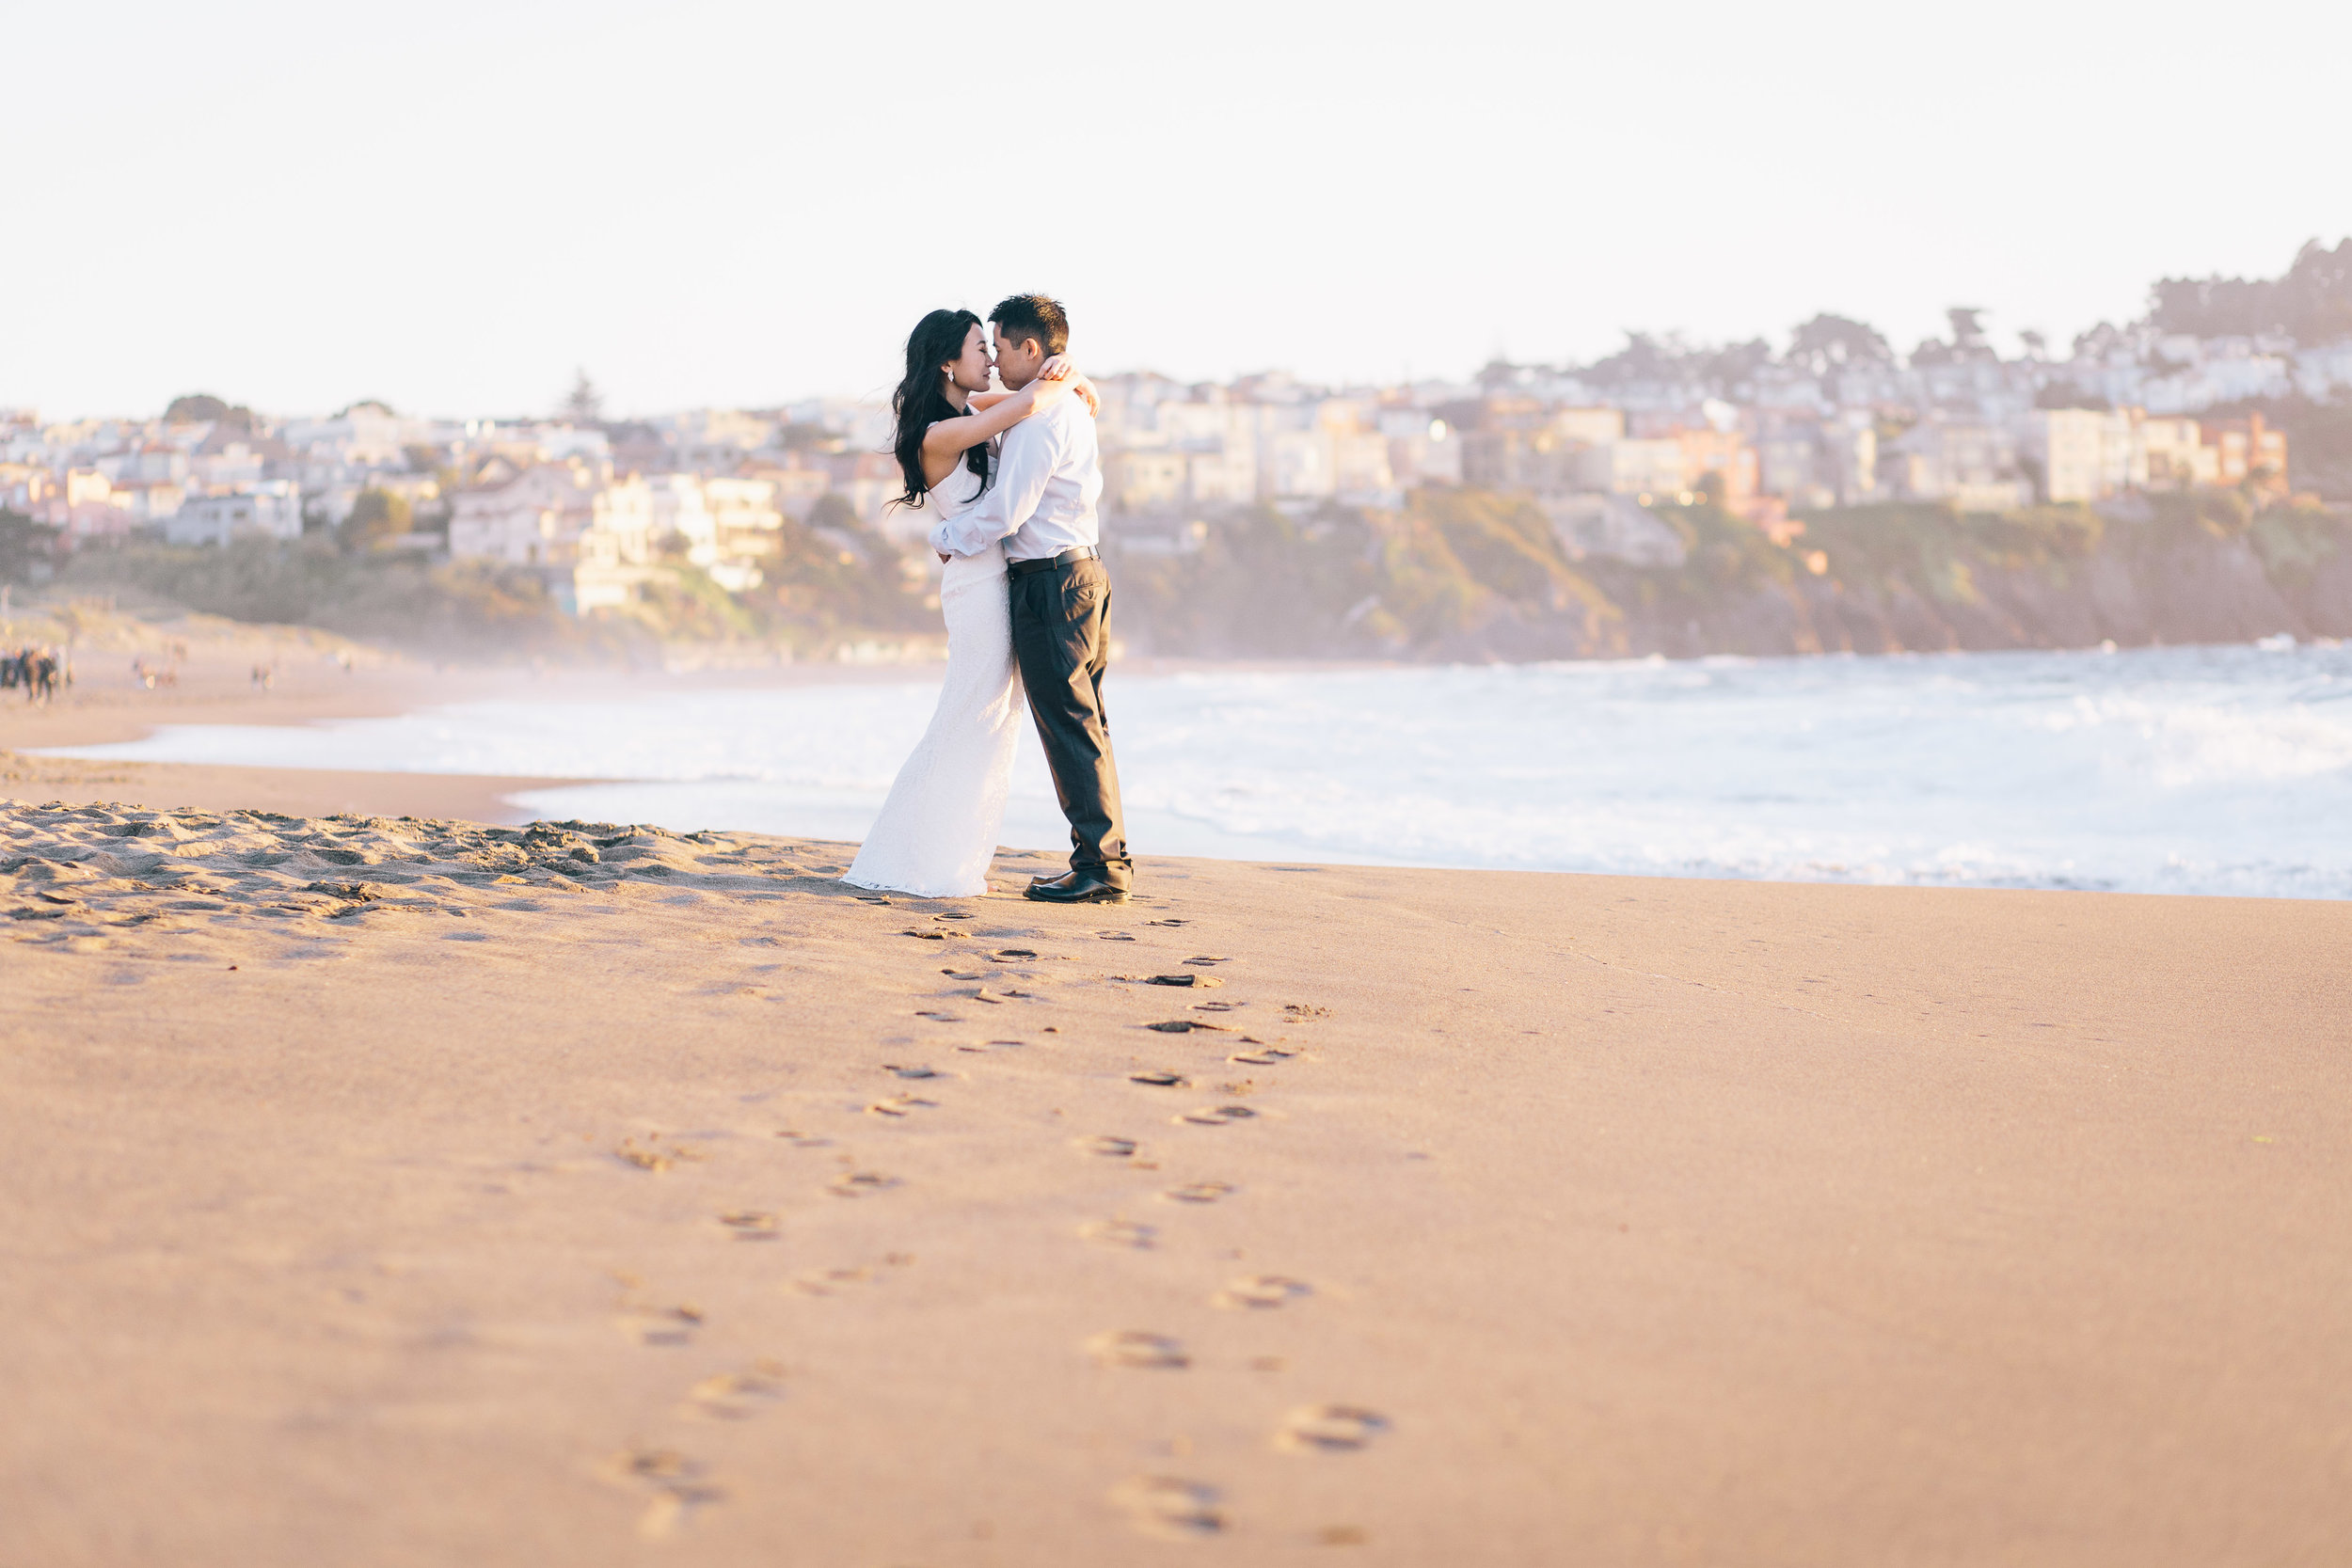 Best Engagement Photo Locations in San Francisco - Baker Beach Engagement Photos by JBJ Pictures (20).jpg